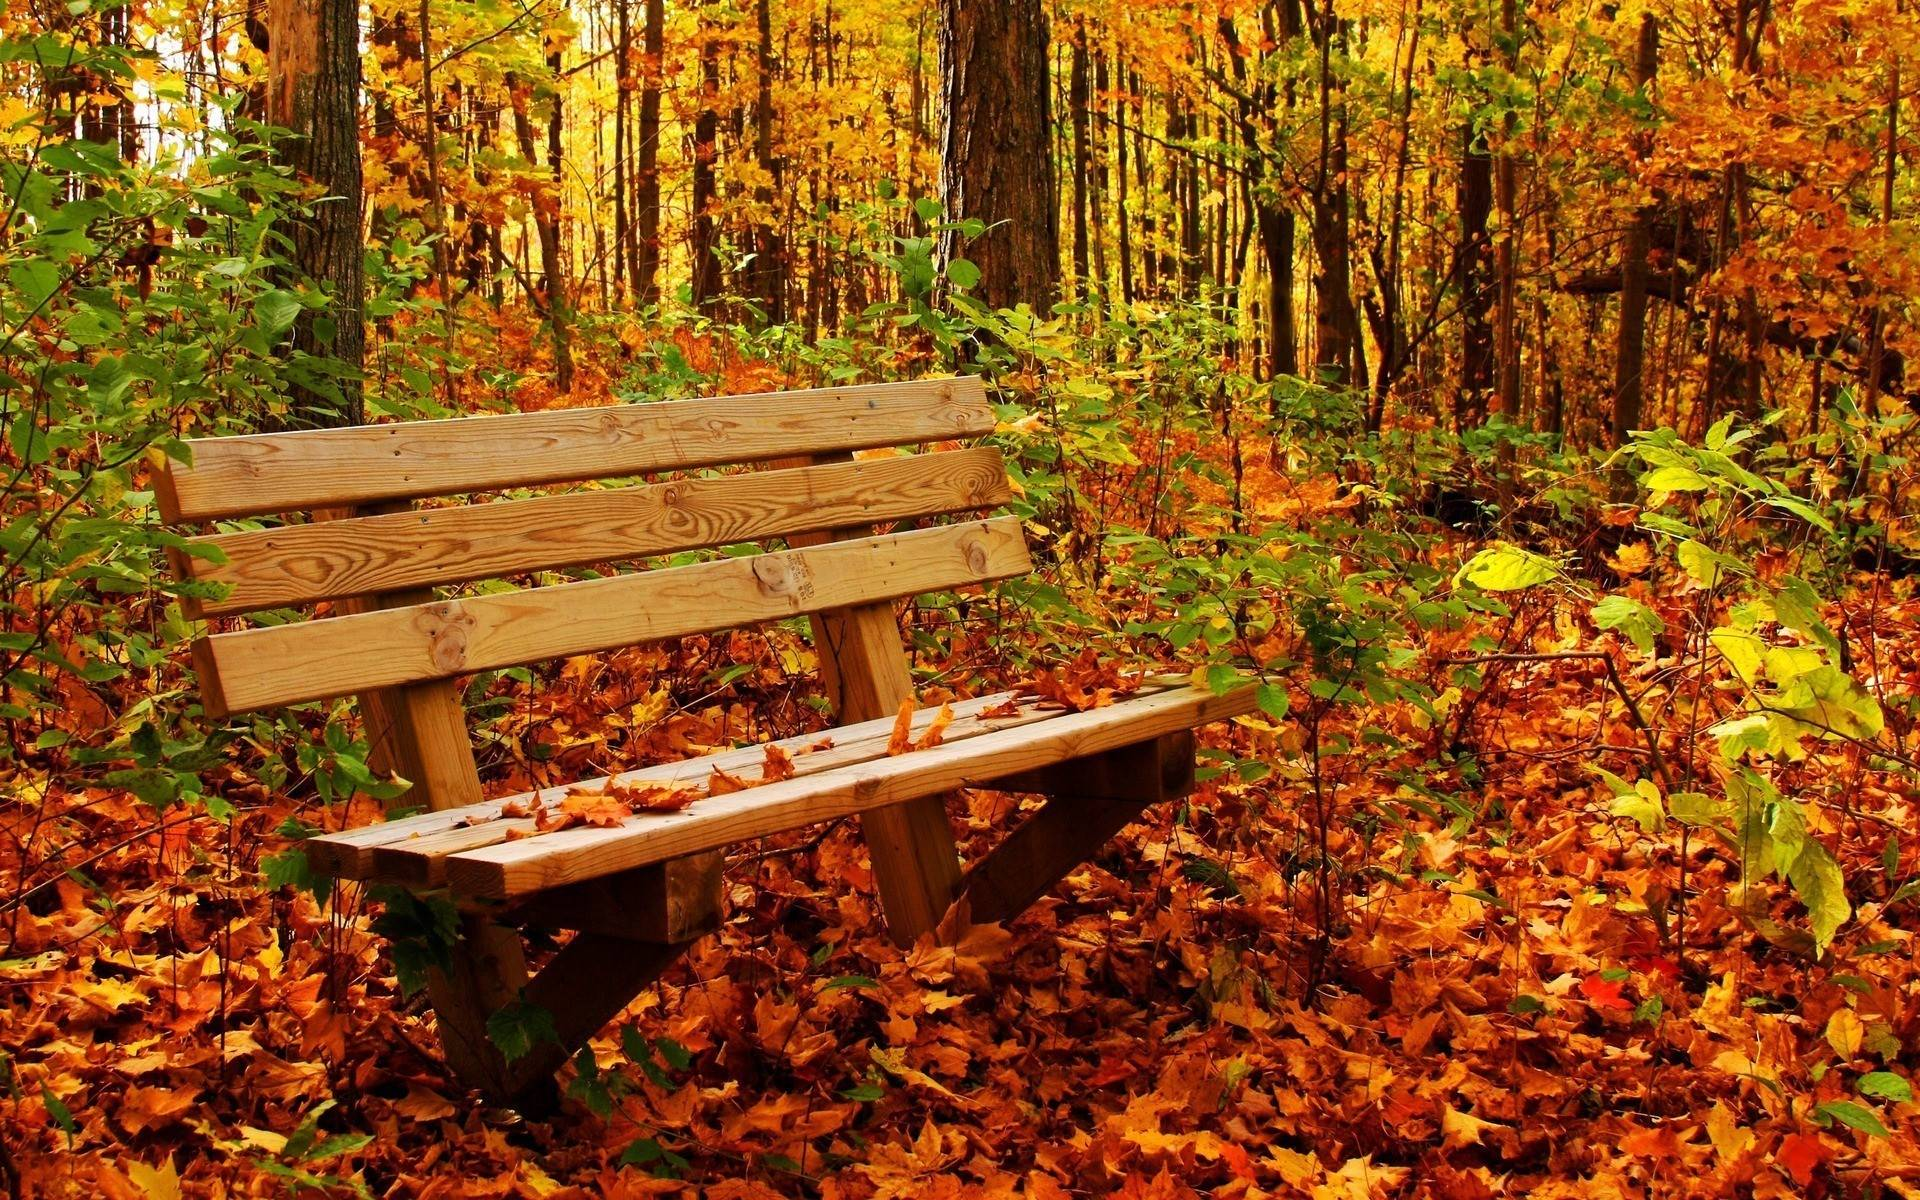 Fall Nature Desktop Wallpapers - Top Free Fall Nature Desktop